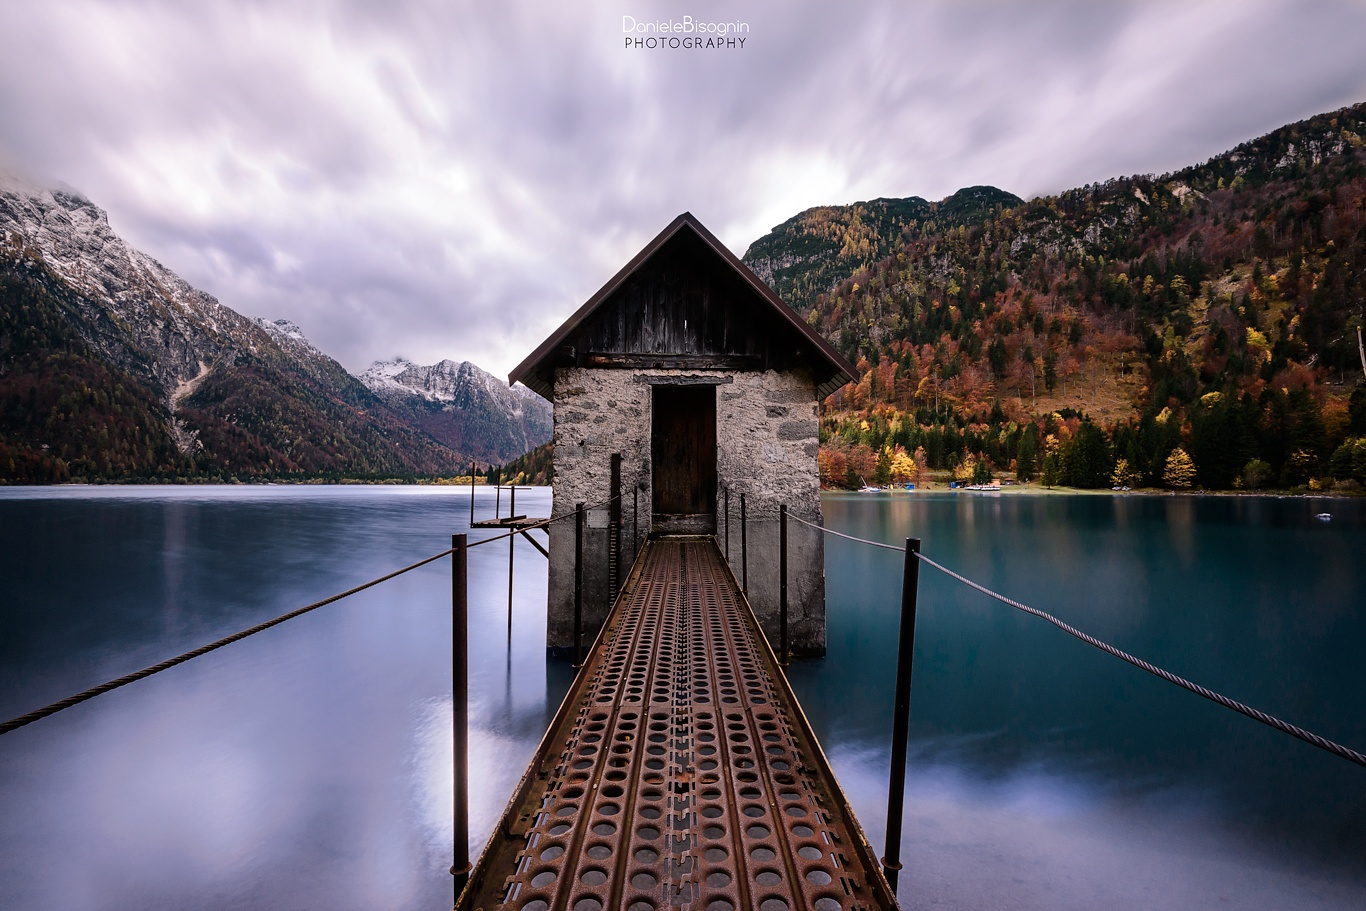 The hut in the lake by Daniele Bisognin